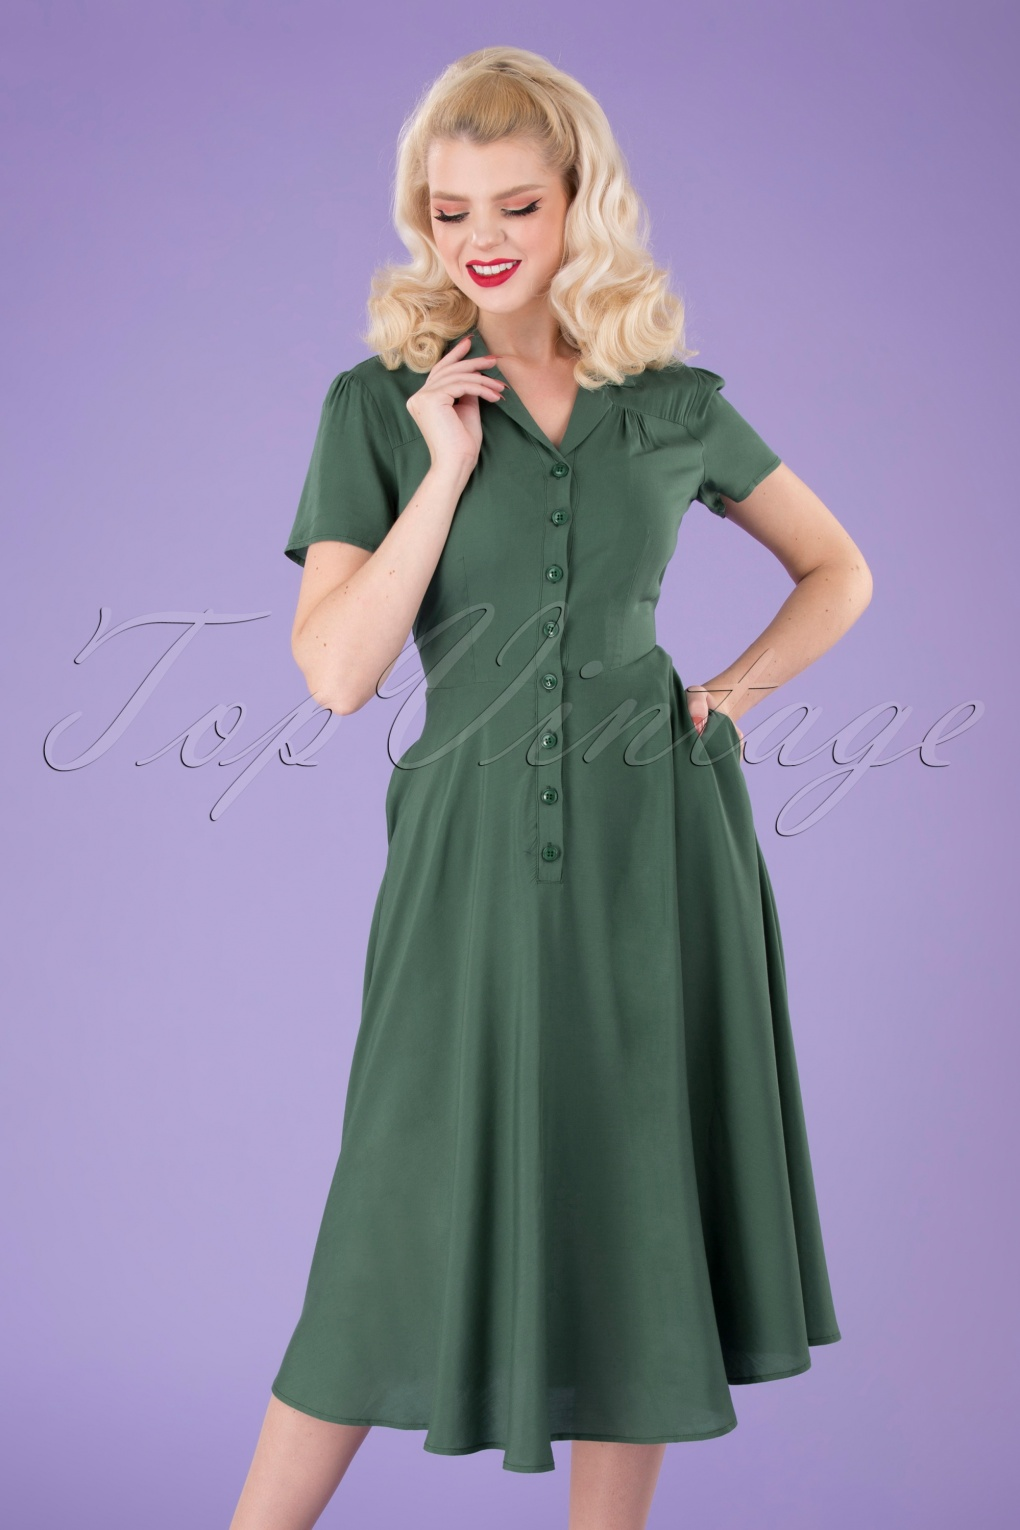 500 Vintage Style Dresses for Sale | Vintage Inspired Dresses 40s Gayle Plain Swing Dress in Green £57.86 AT vintagedancer.com